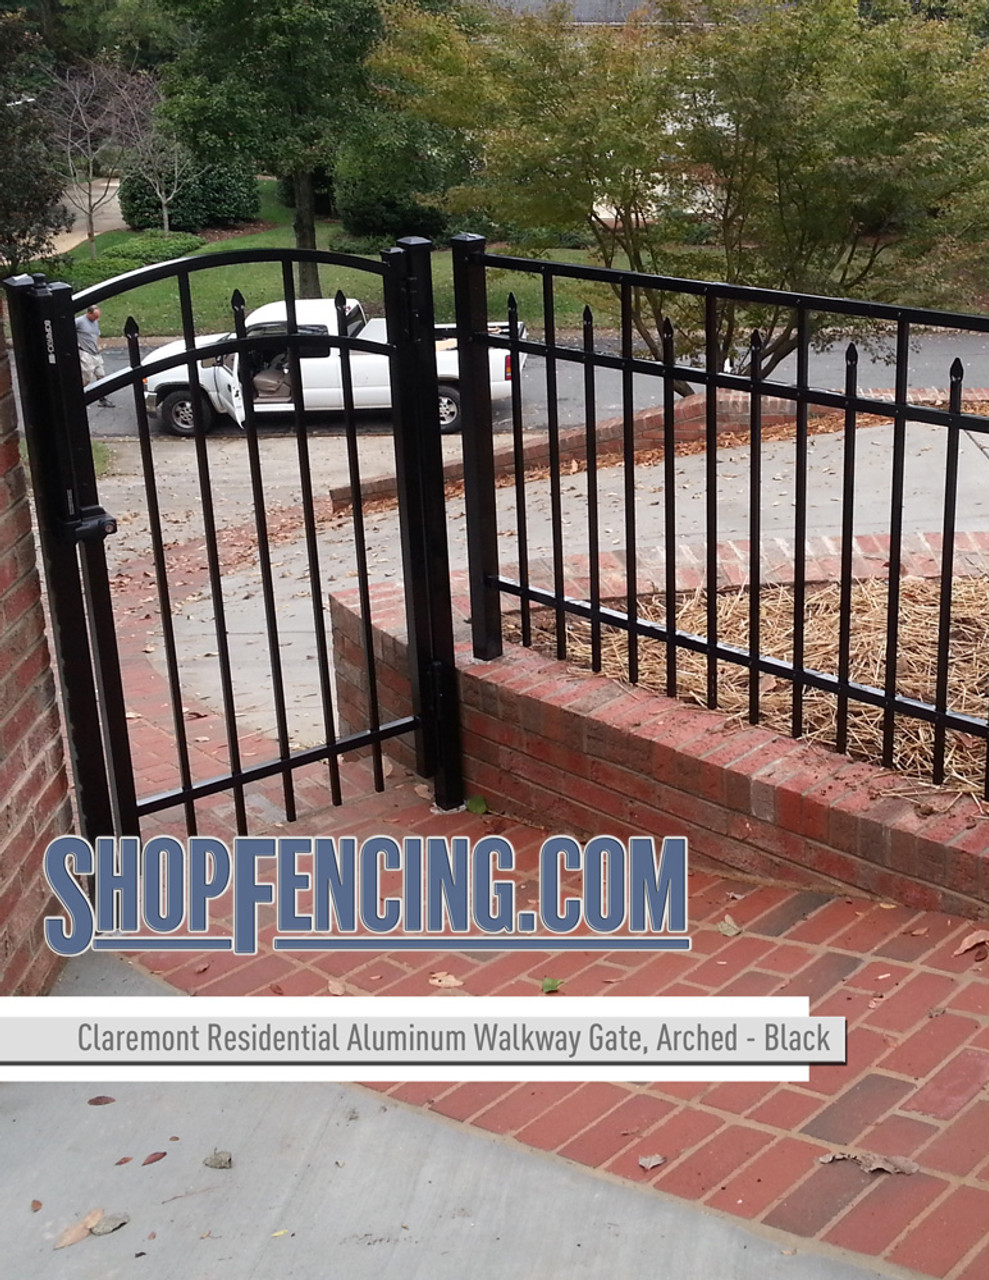 Black Residential Claremont Aluminum Walkway Gate From ShopFencing.com